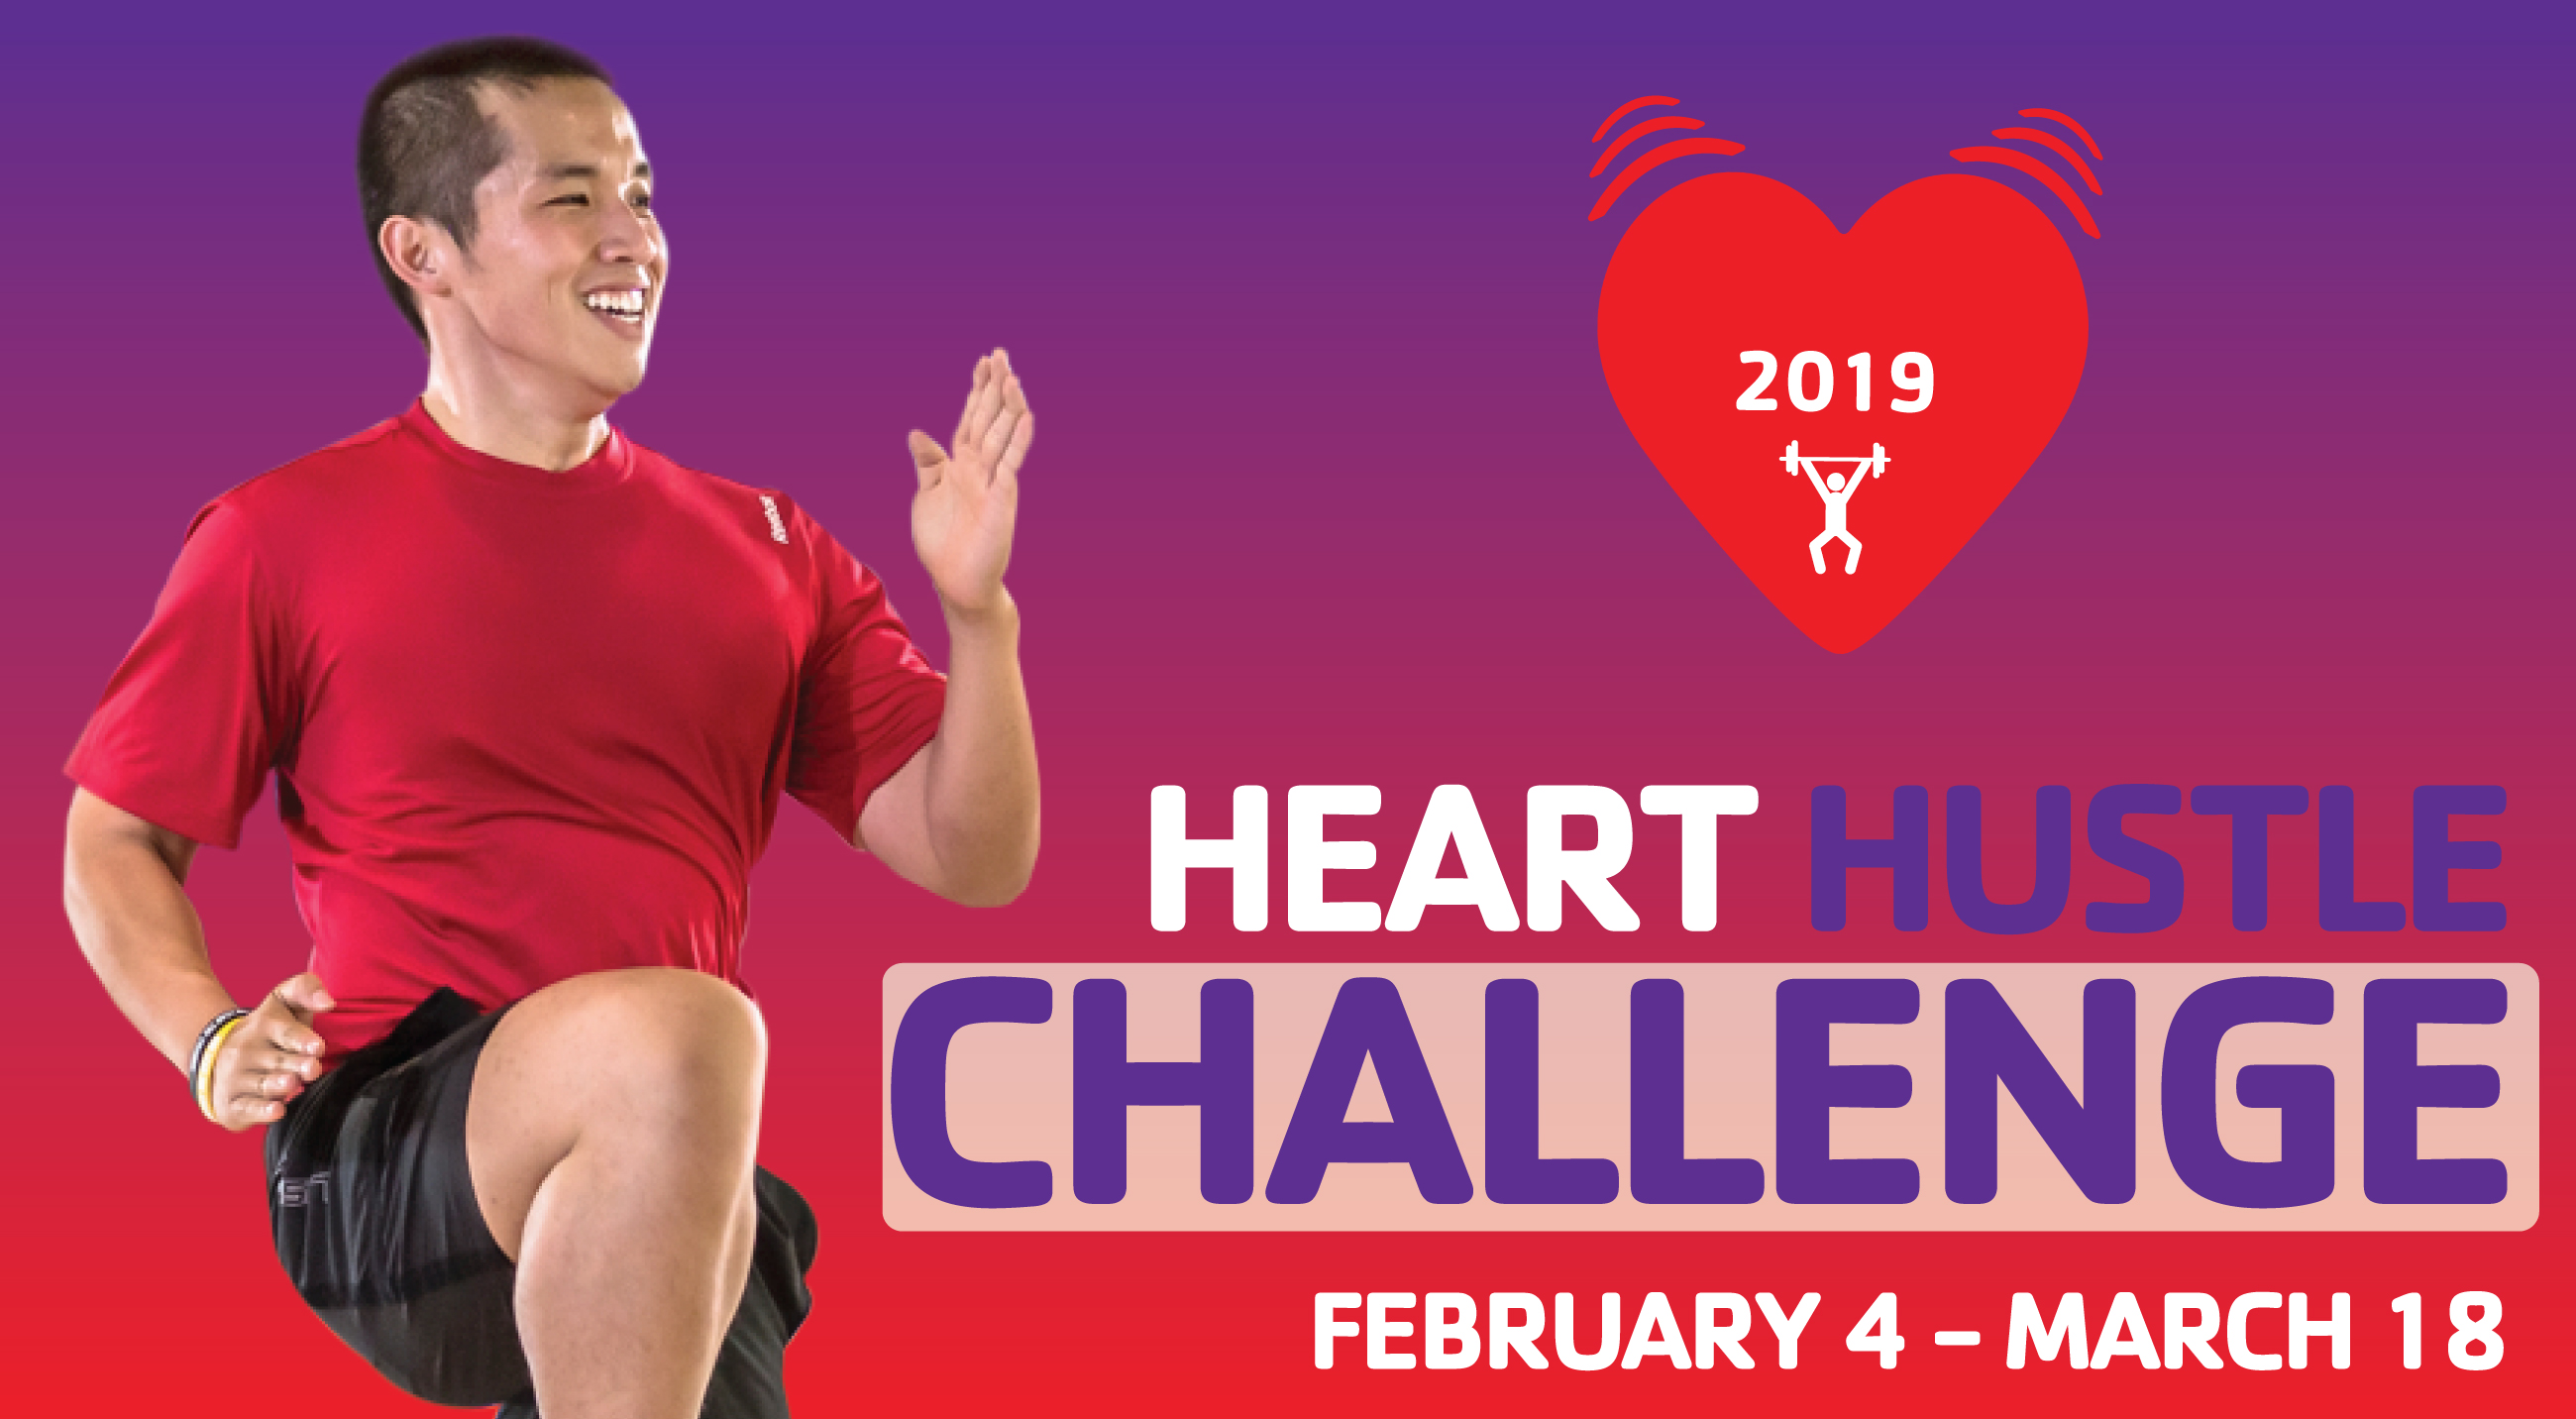 Heart Hustle Challenge